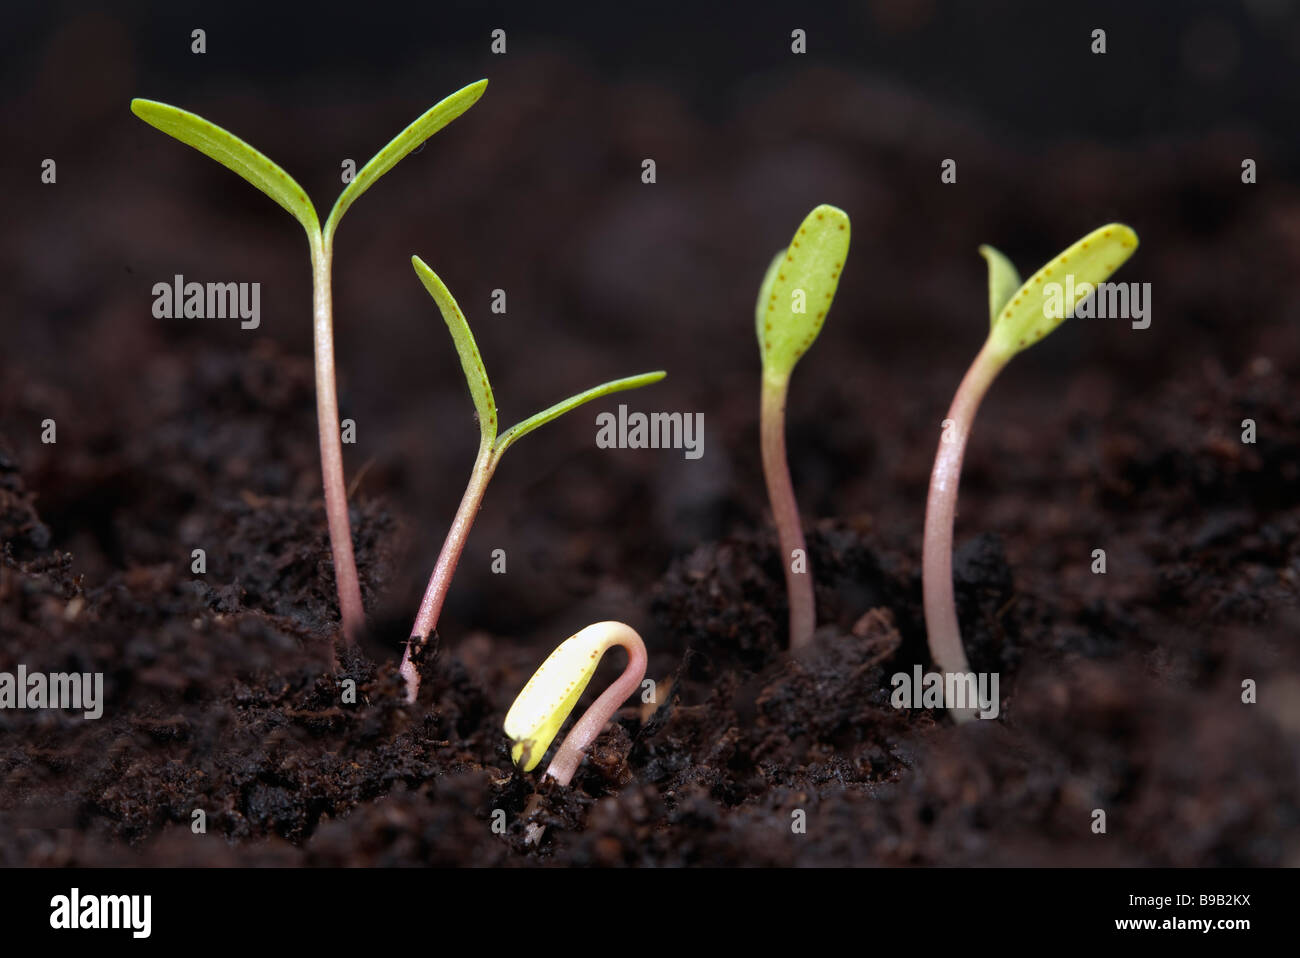 Cotyledons of 5 new marigold seedlings emerging in peat compost - Stock Image